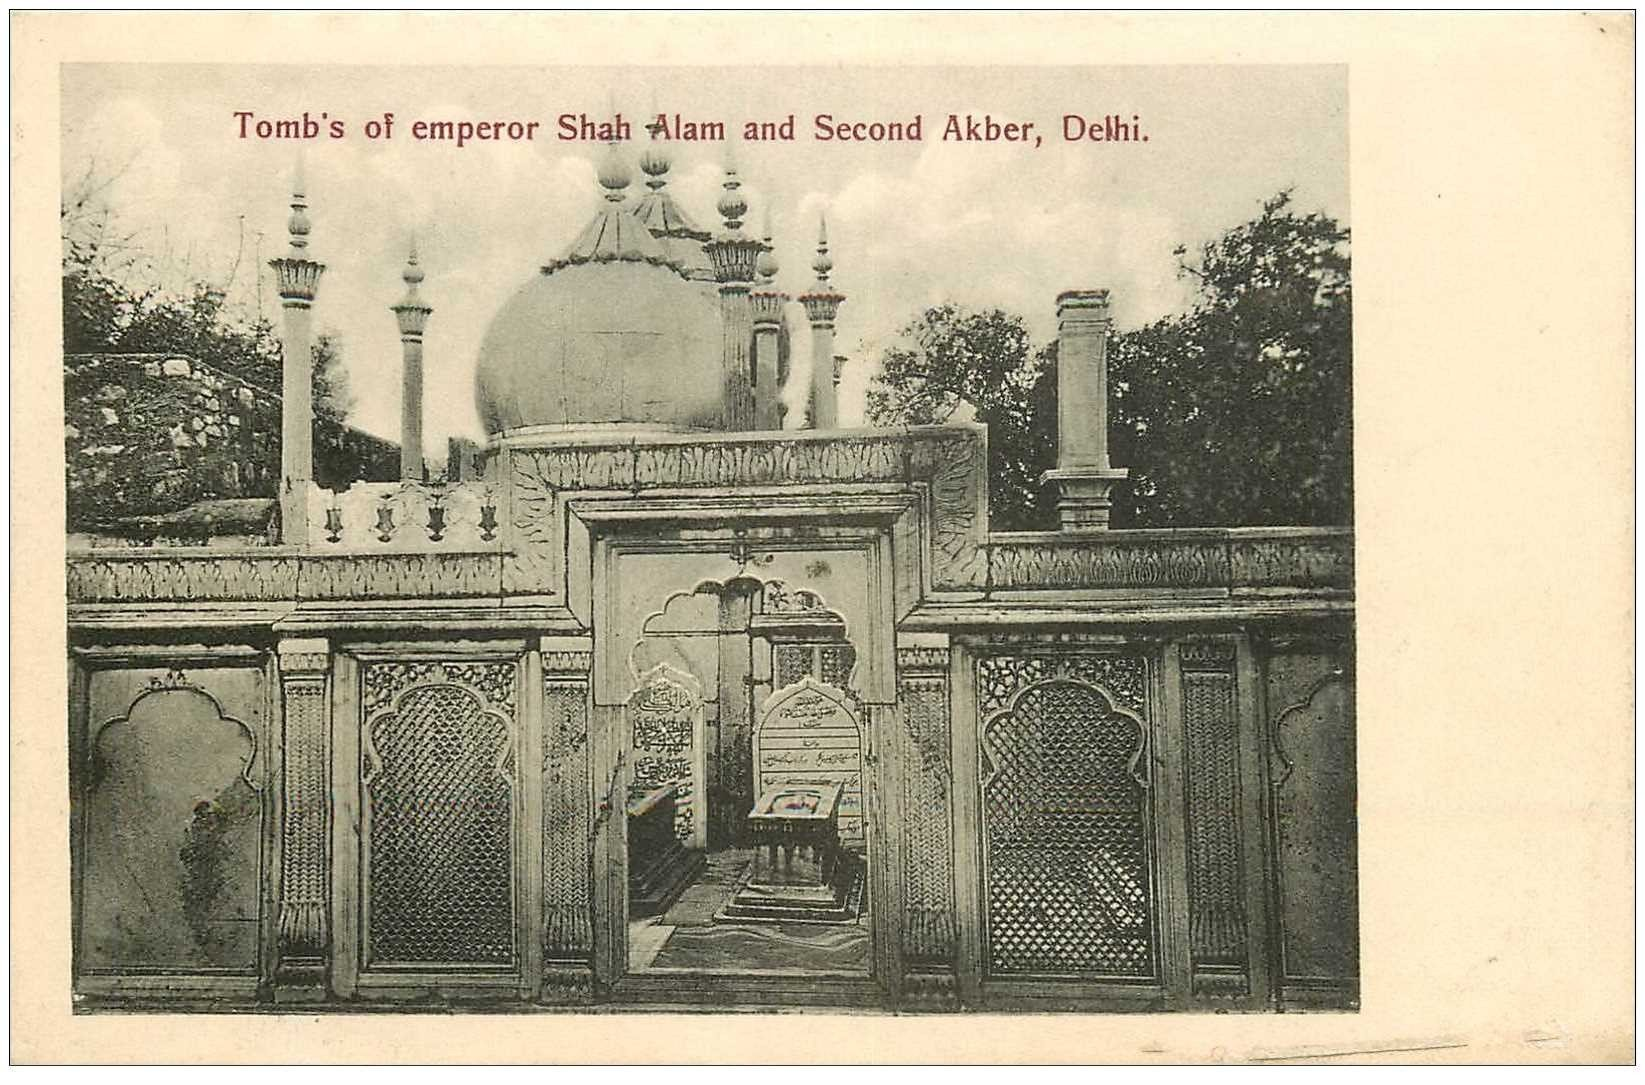 carte postale ancienne INDE. Delhi. Tomb's of Emperor Shah Alam and Second Akber